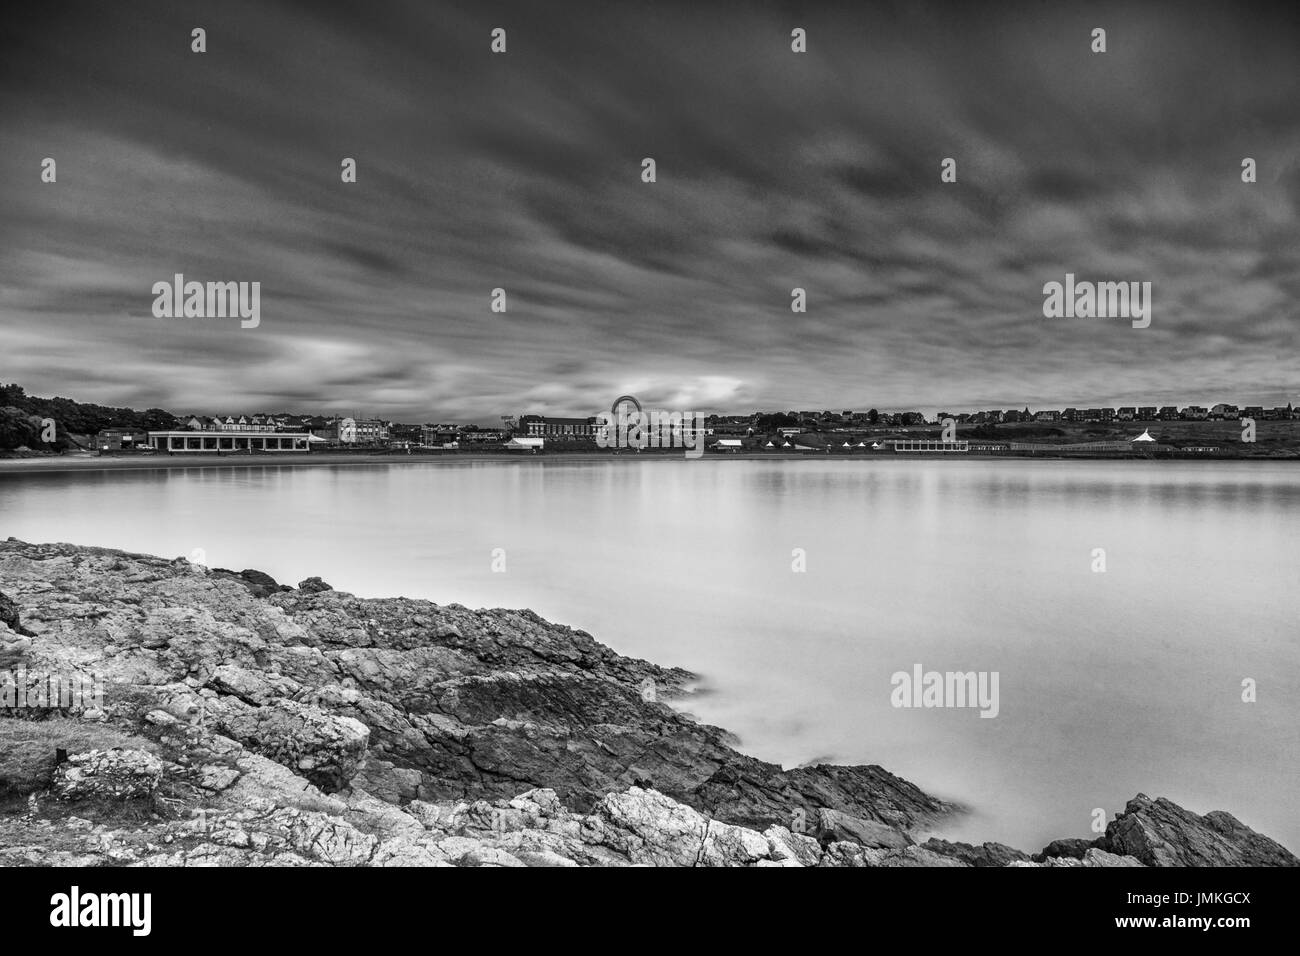 A two minute exposure over Whitmore Bay, Barry Island, Barry in Wales, United Kingdom. Stock Photo